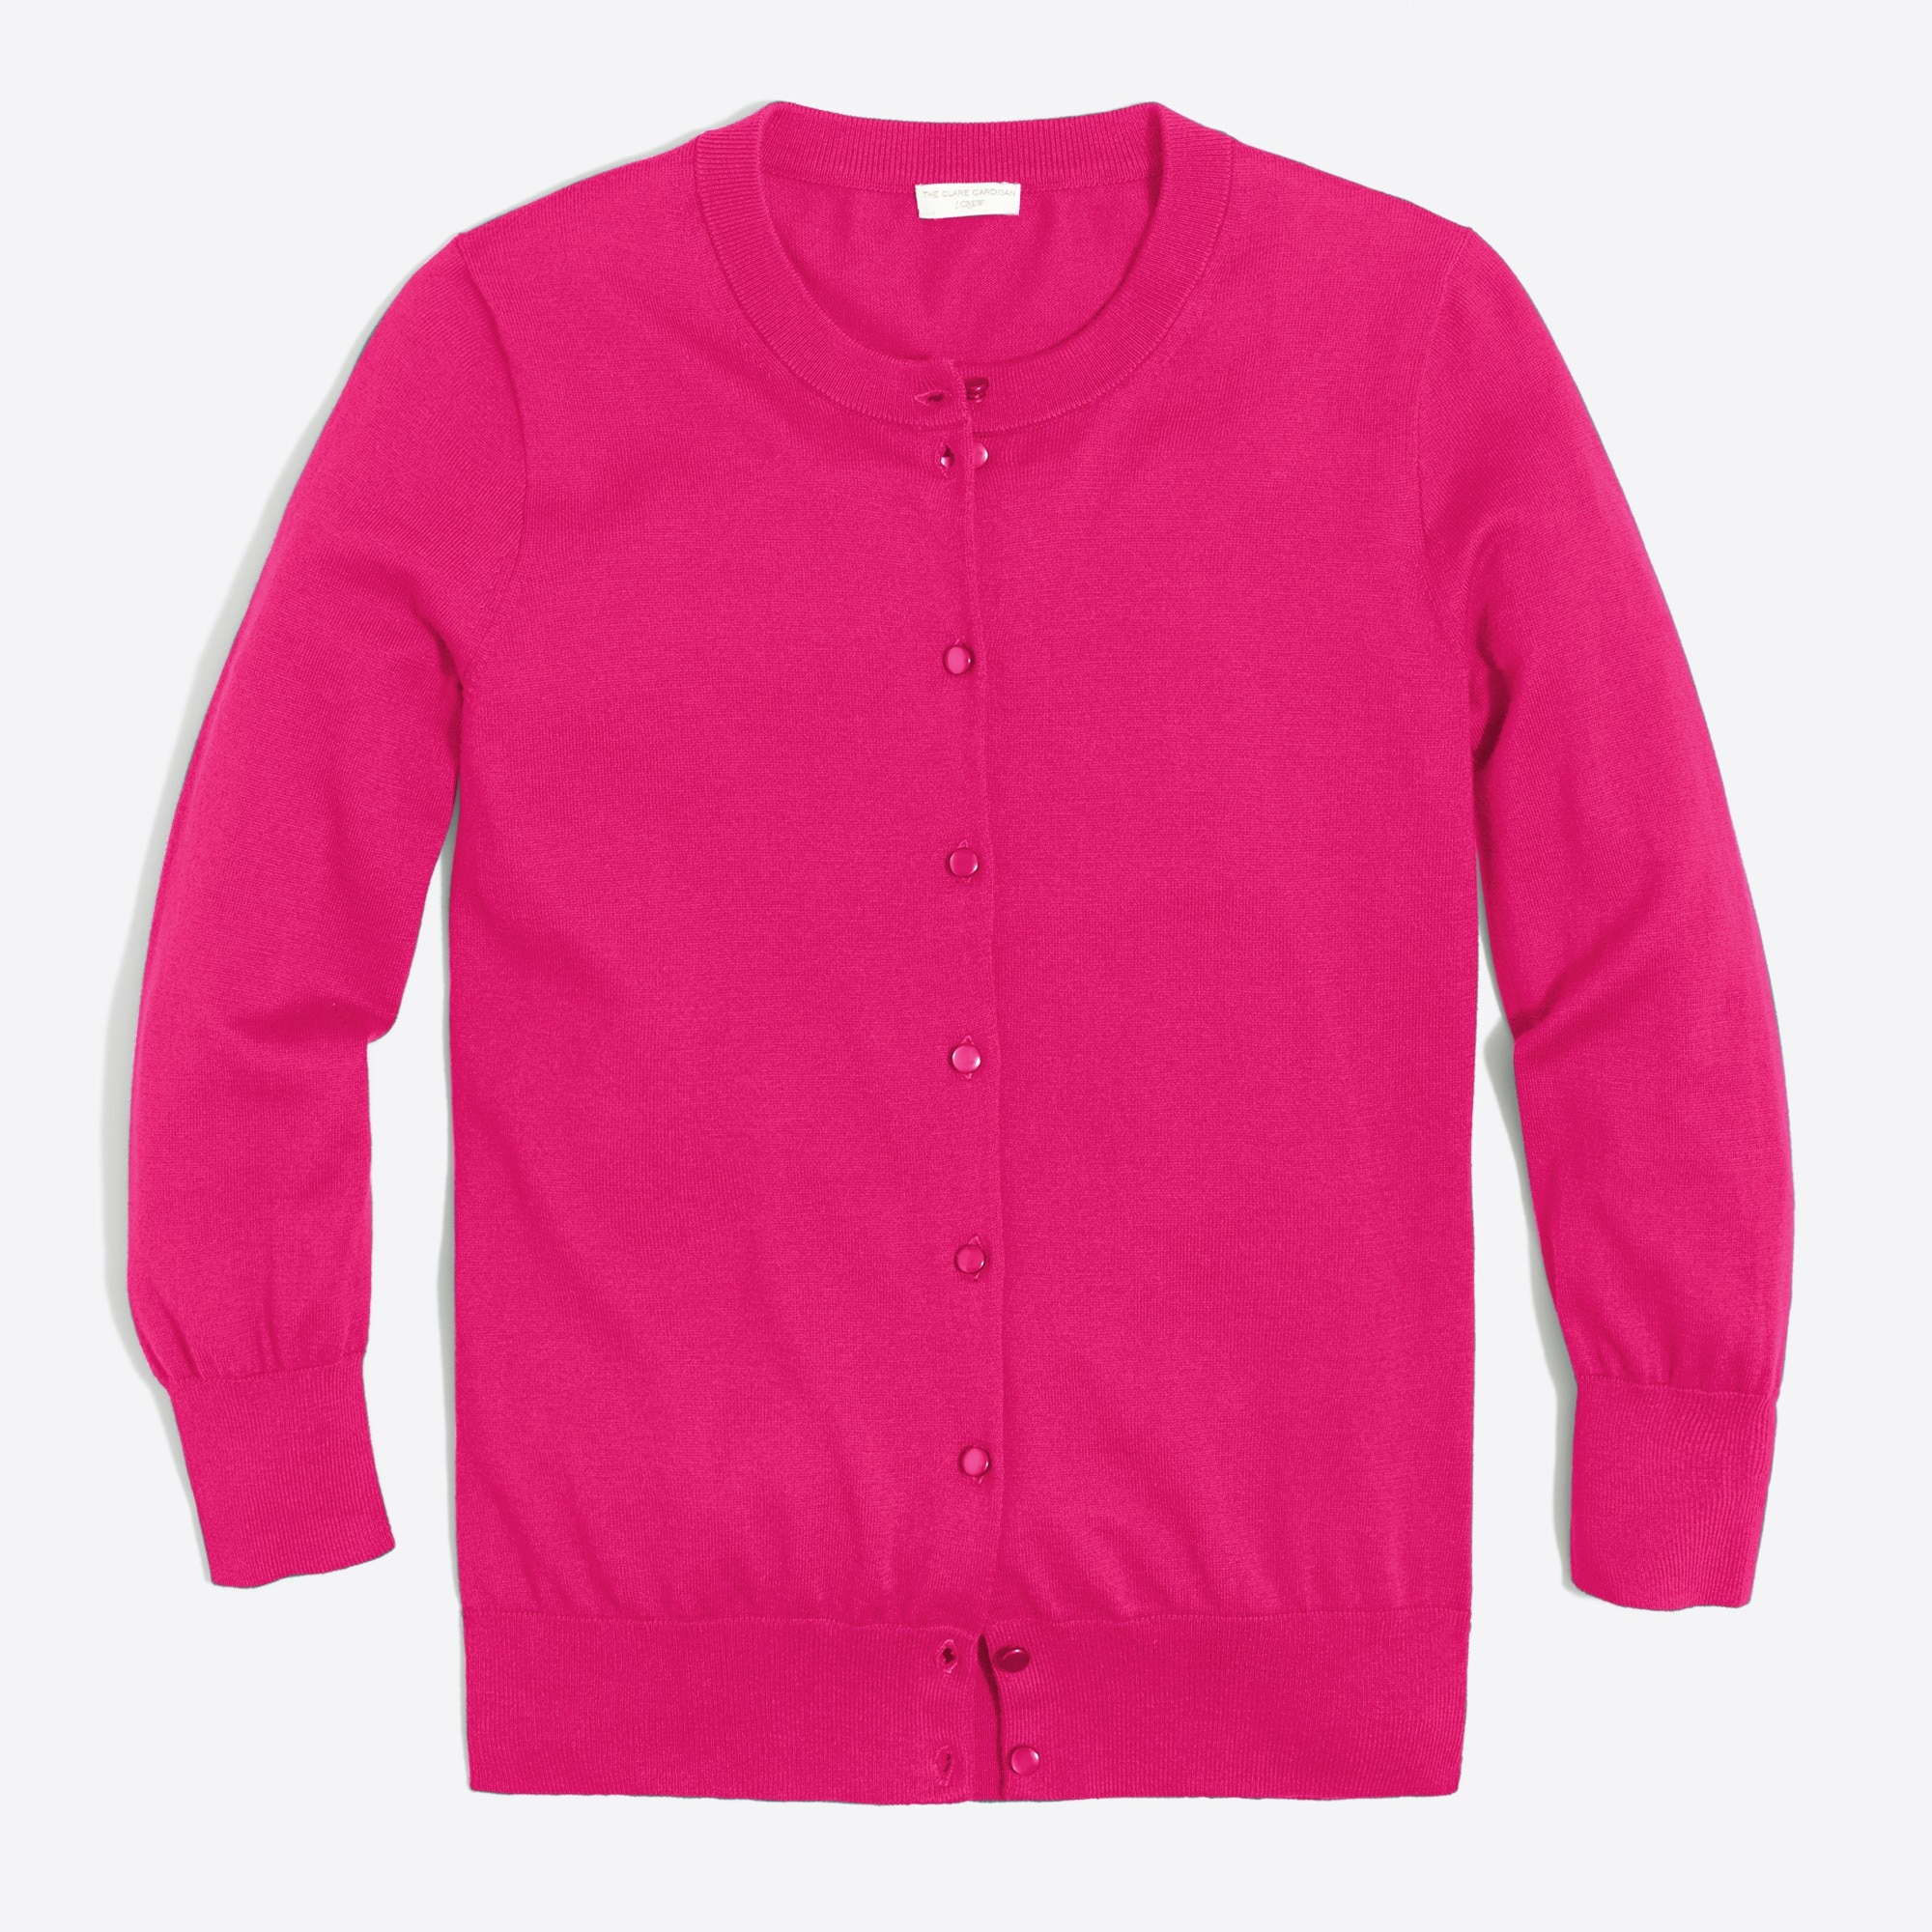 Clare cardigan sweater factorywomen wear-to-work shop c